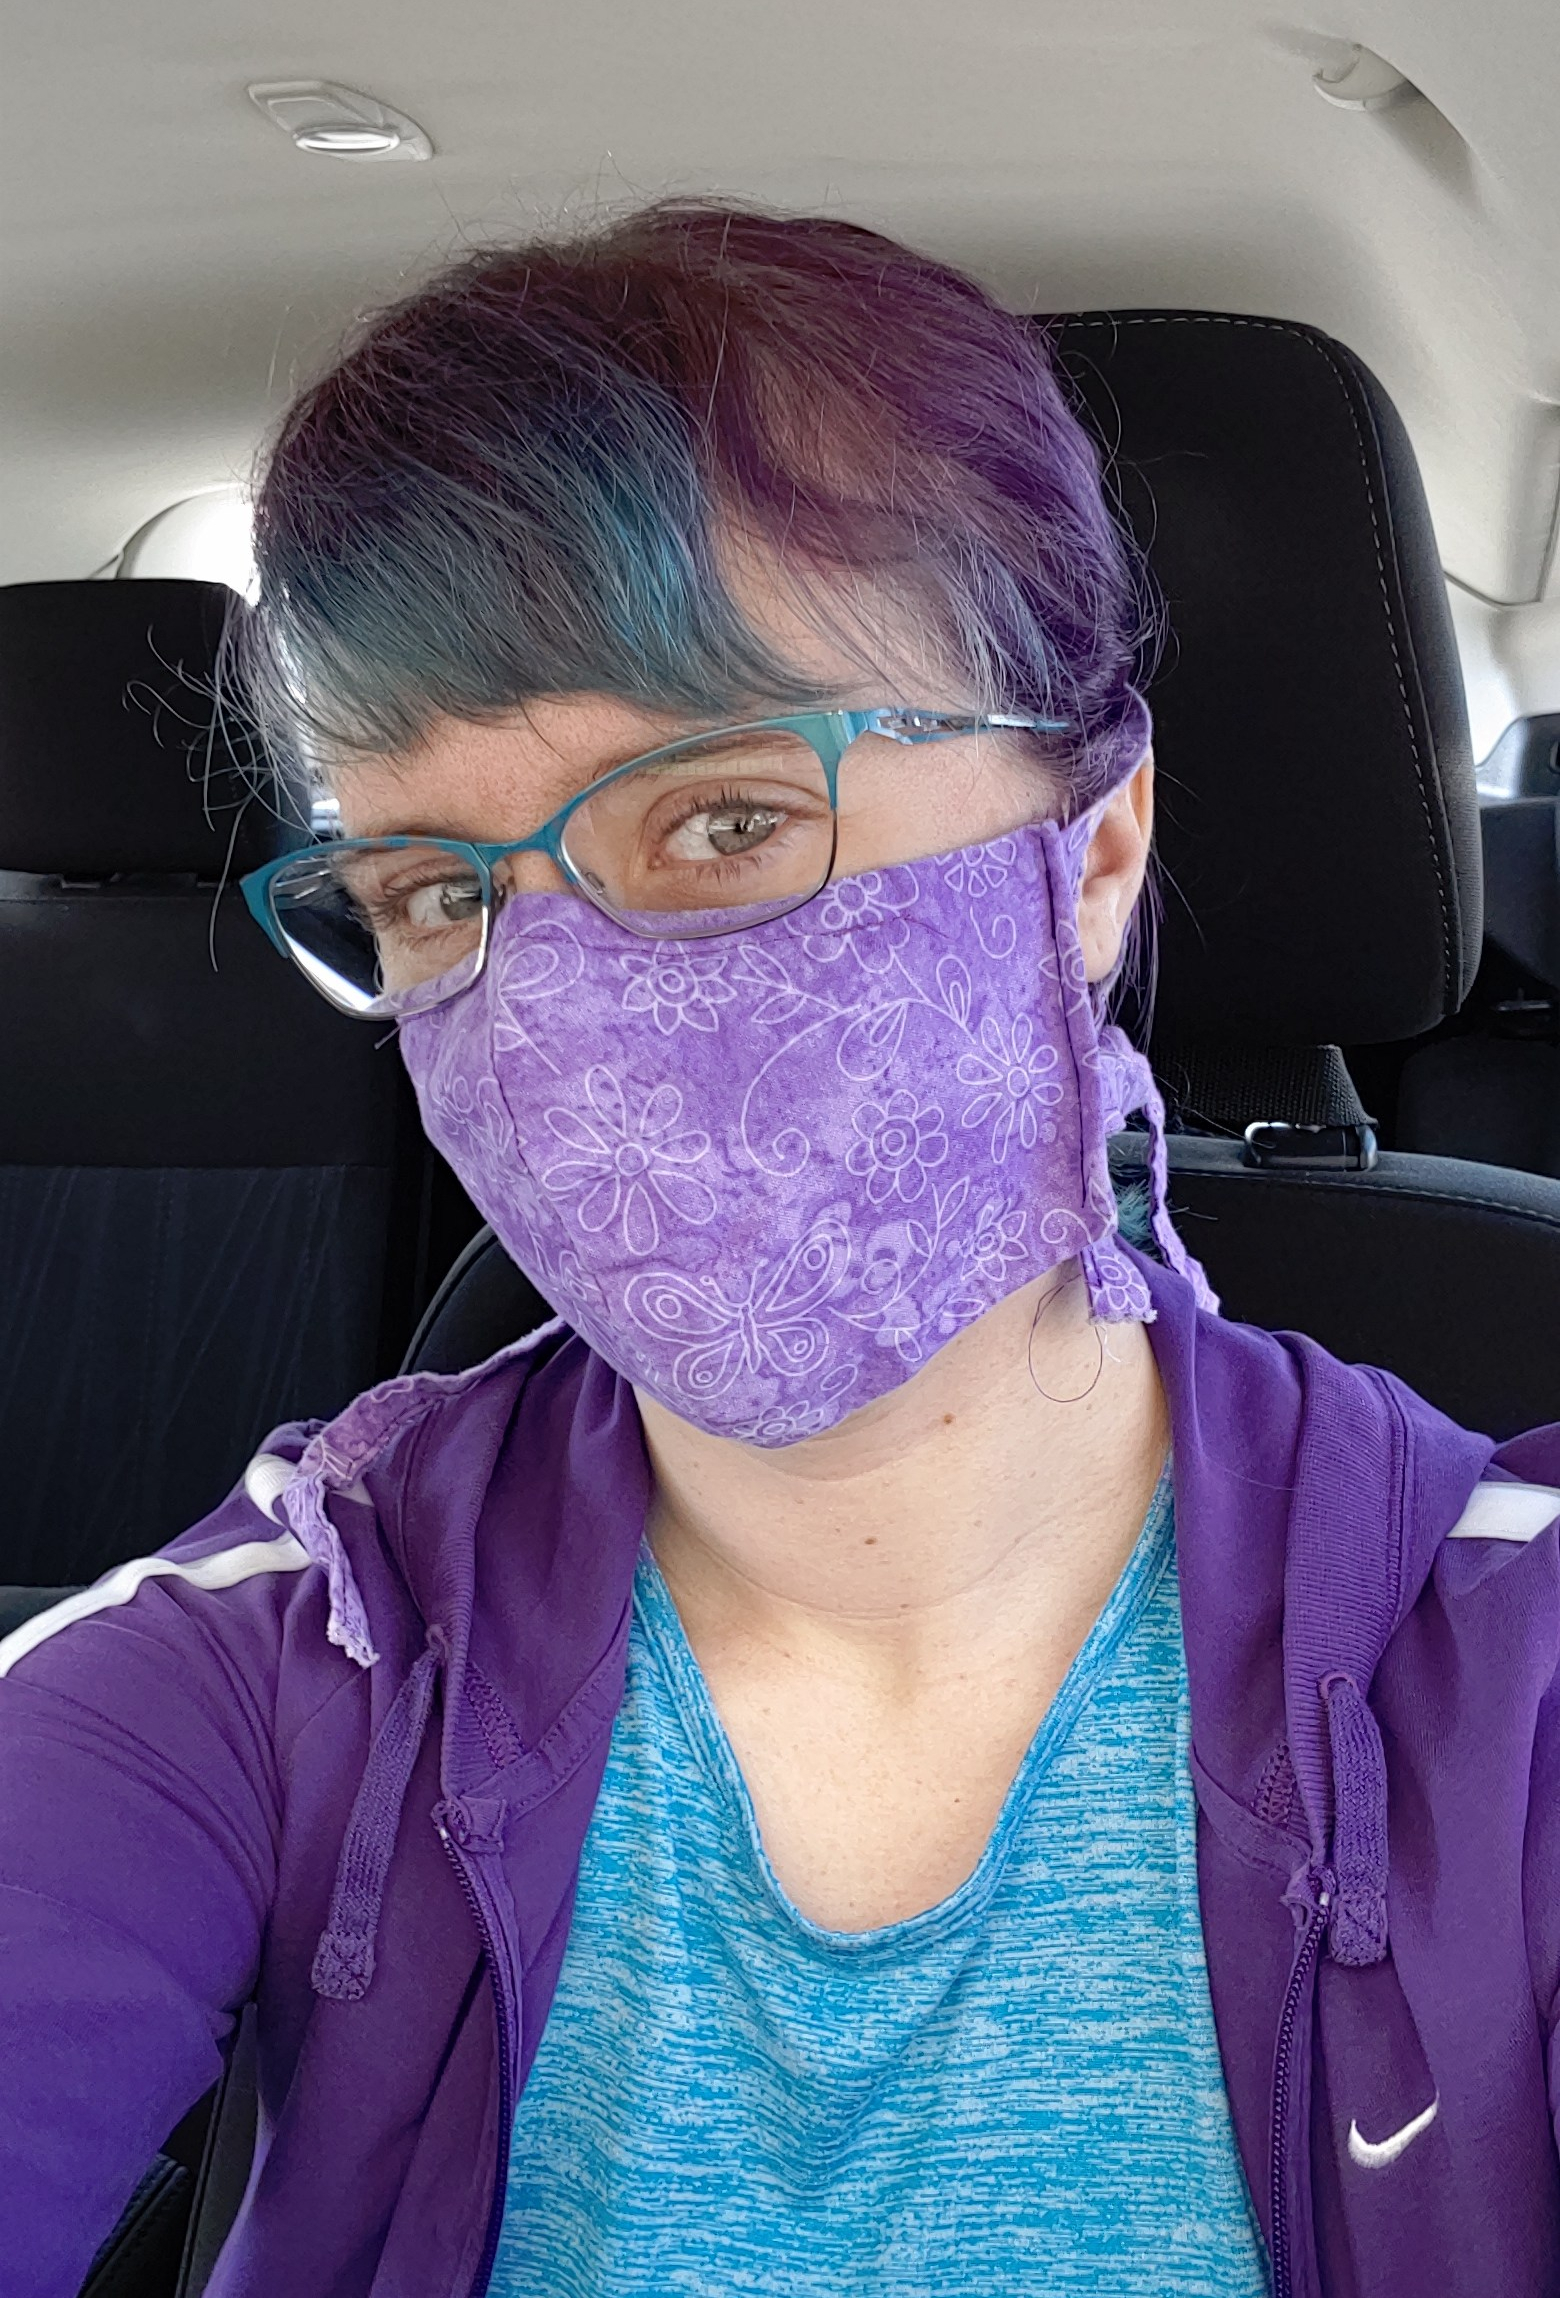 White woman with purple and blue hair, wearing blue glasses, a purple face mask, blue shirt, and purple jacket, sitting in a car with black seats.